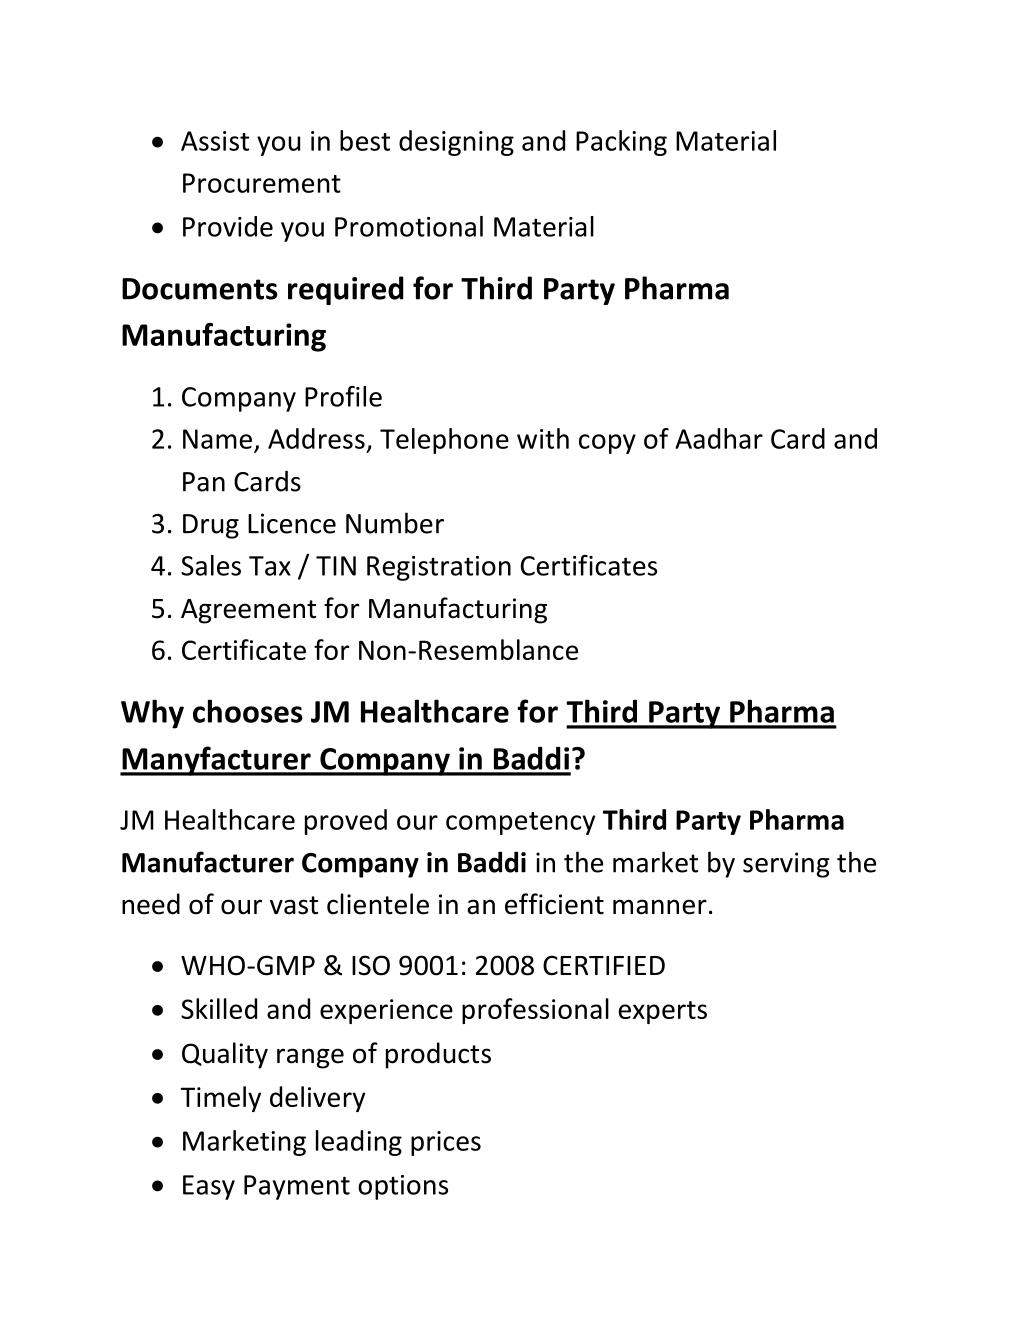 PPT - Third Party Pharma Manufacturer Company in Baddi